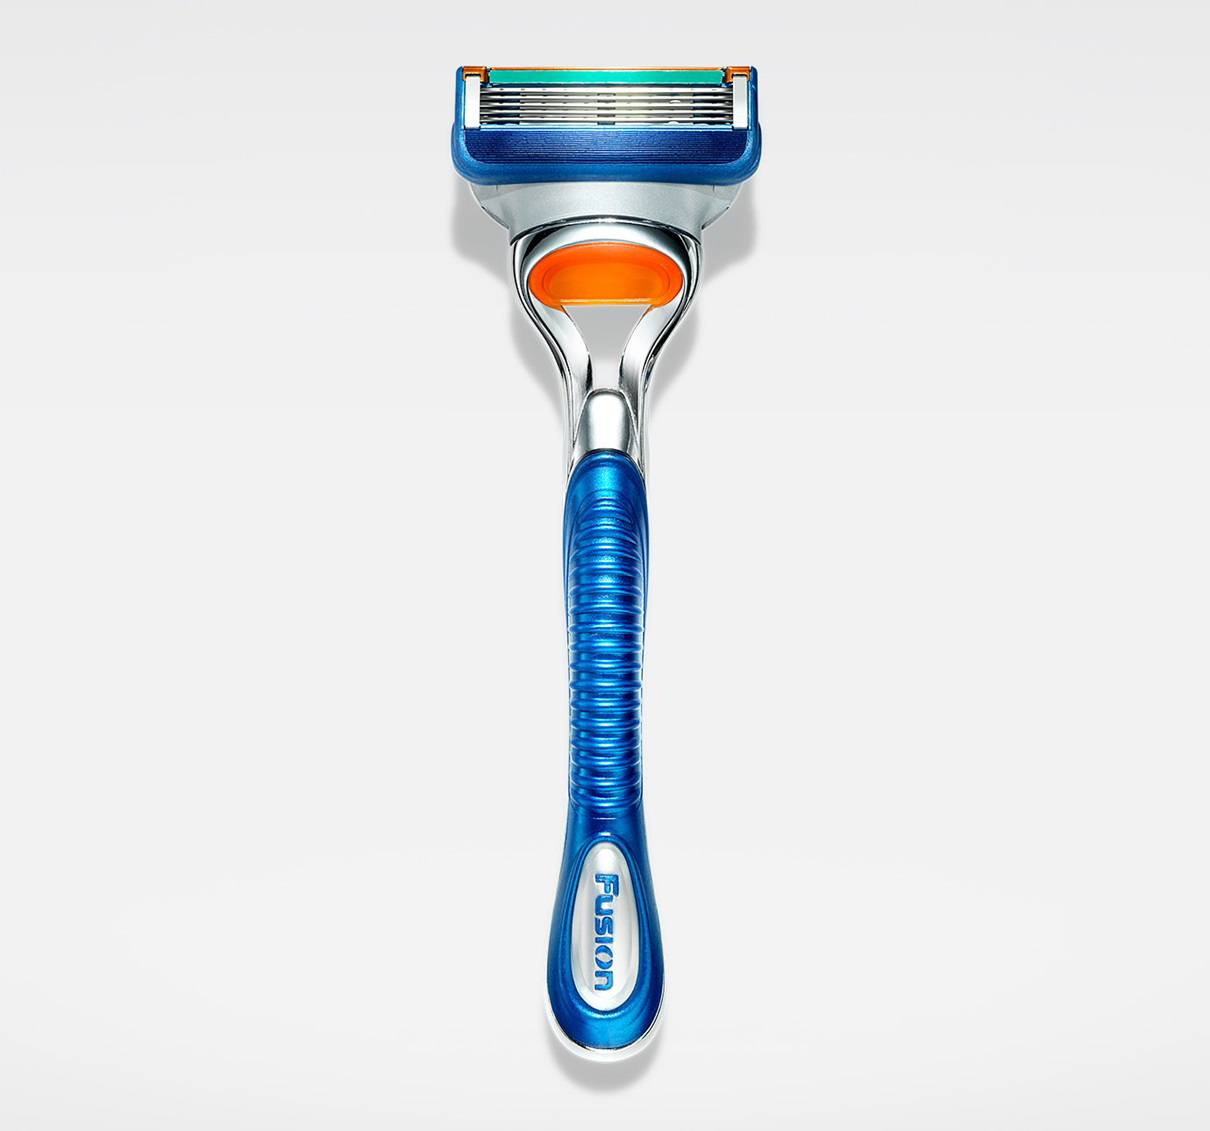 01_Fusion_Manual_Razor_Desktop